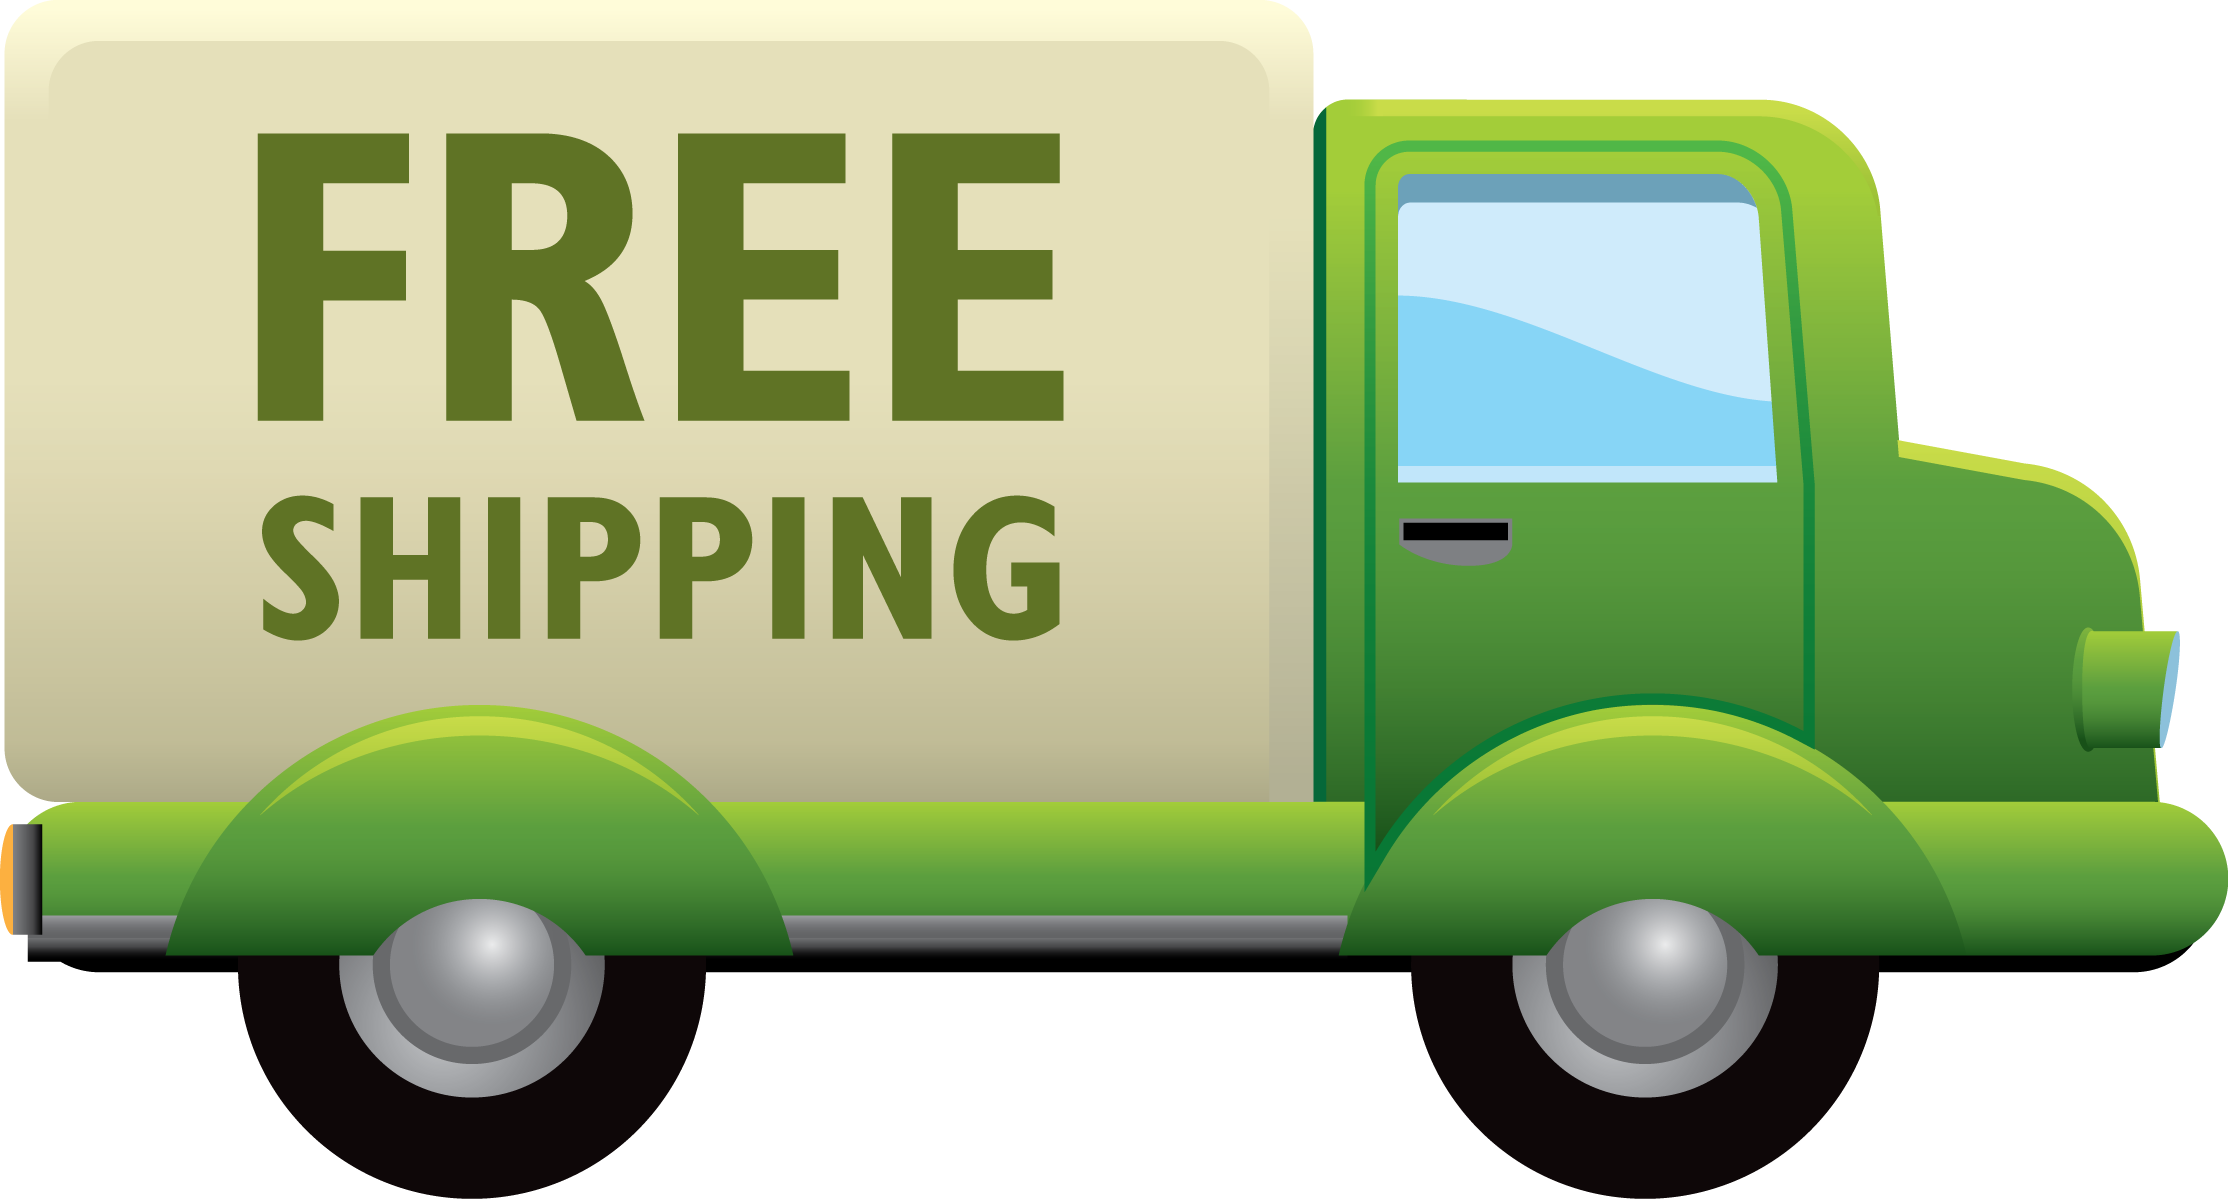 Download Free Shipping PNG File.